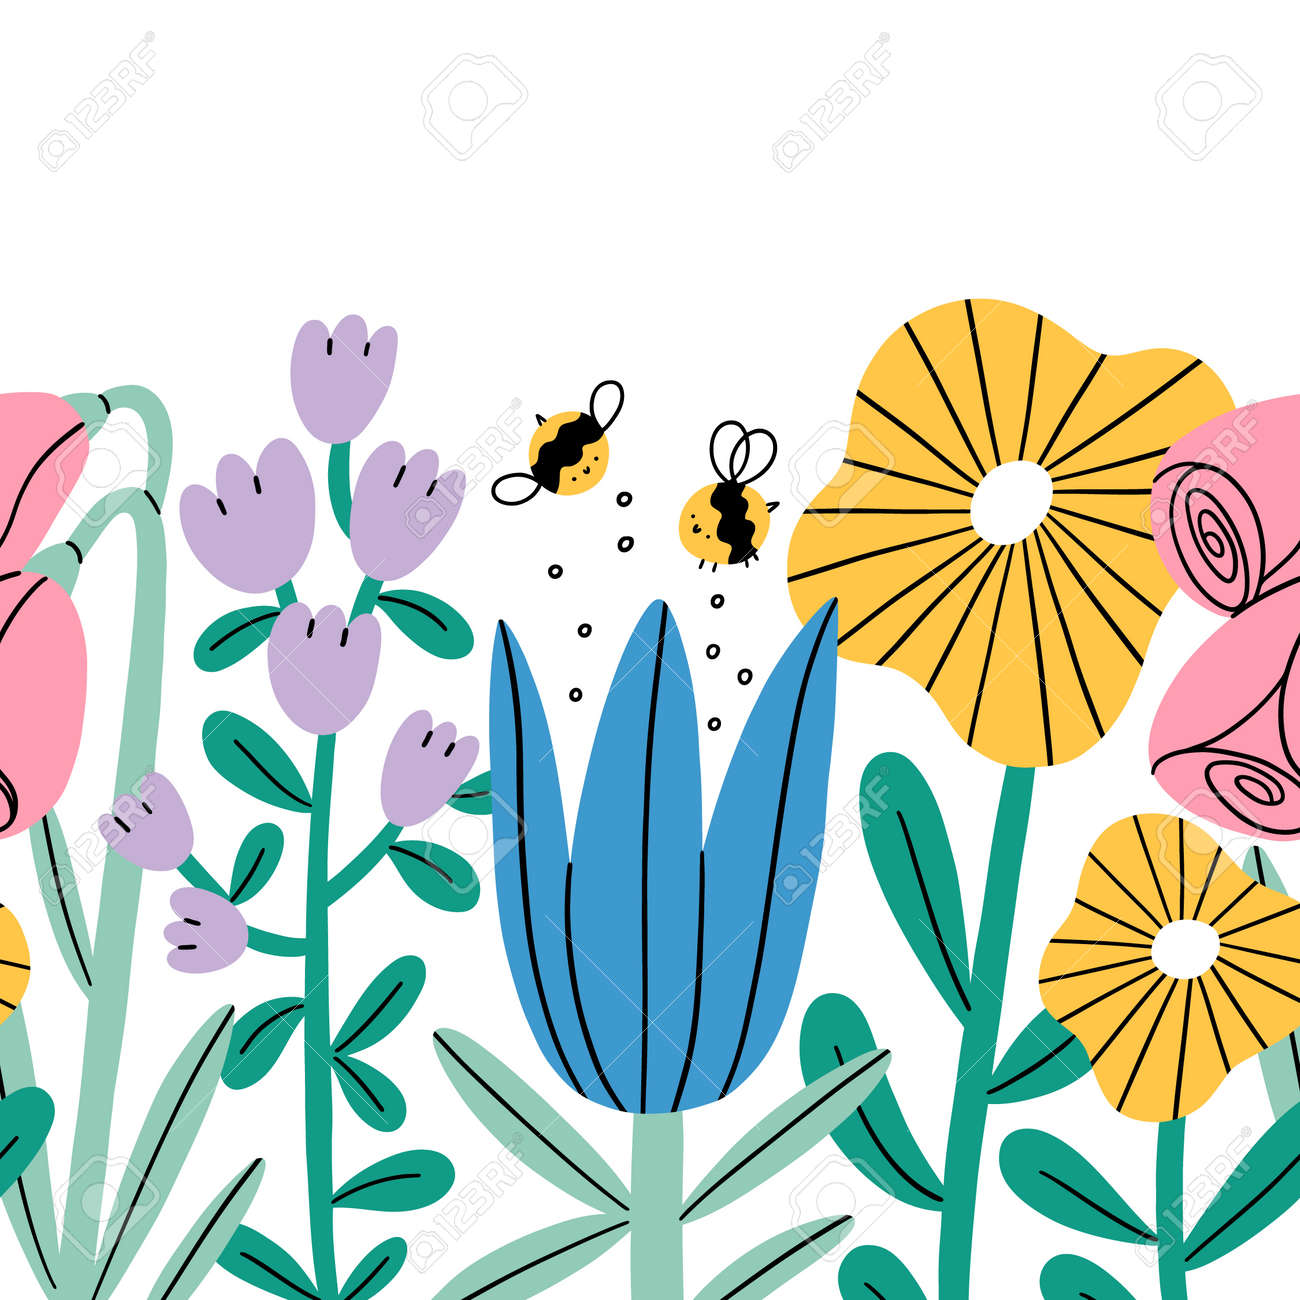 Big cartoon flowers and bees seamless composition, vector repeat border illustration, isolated on white background - 161174354